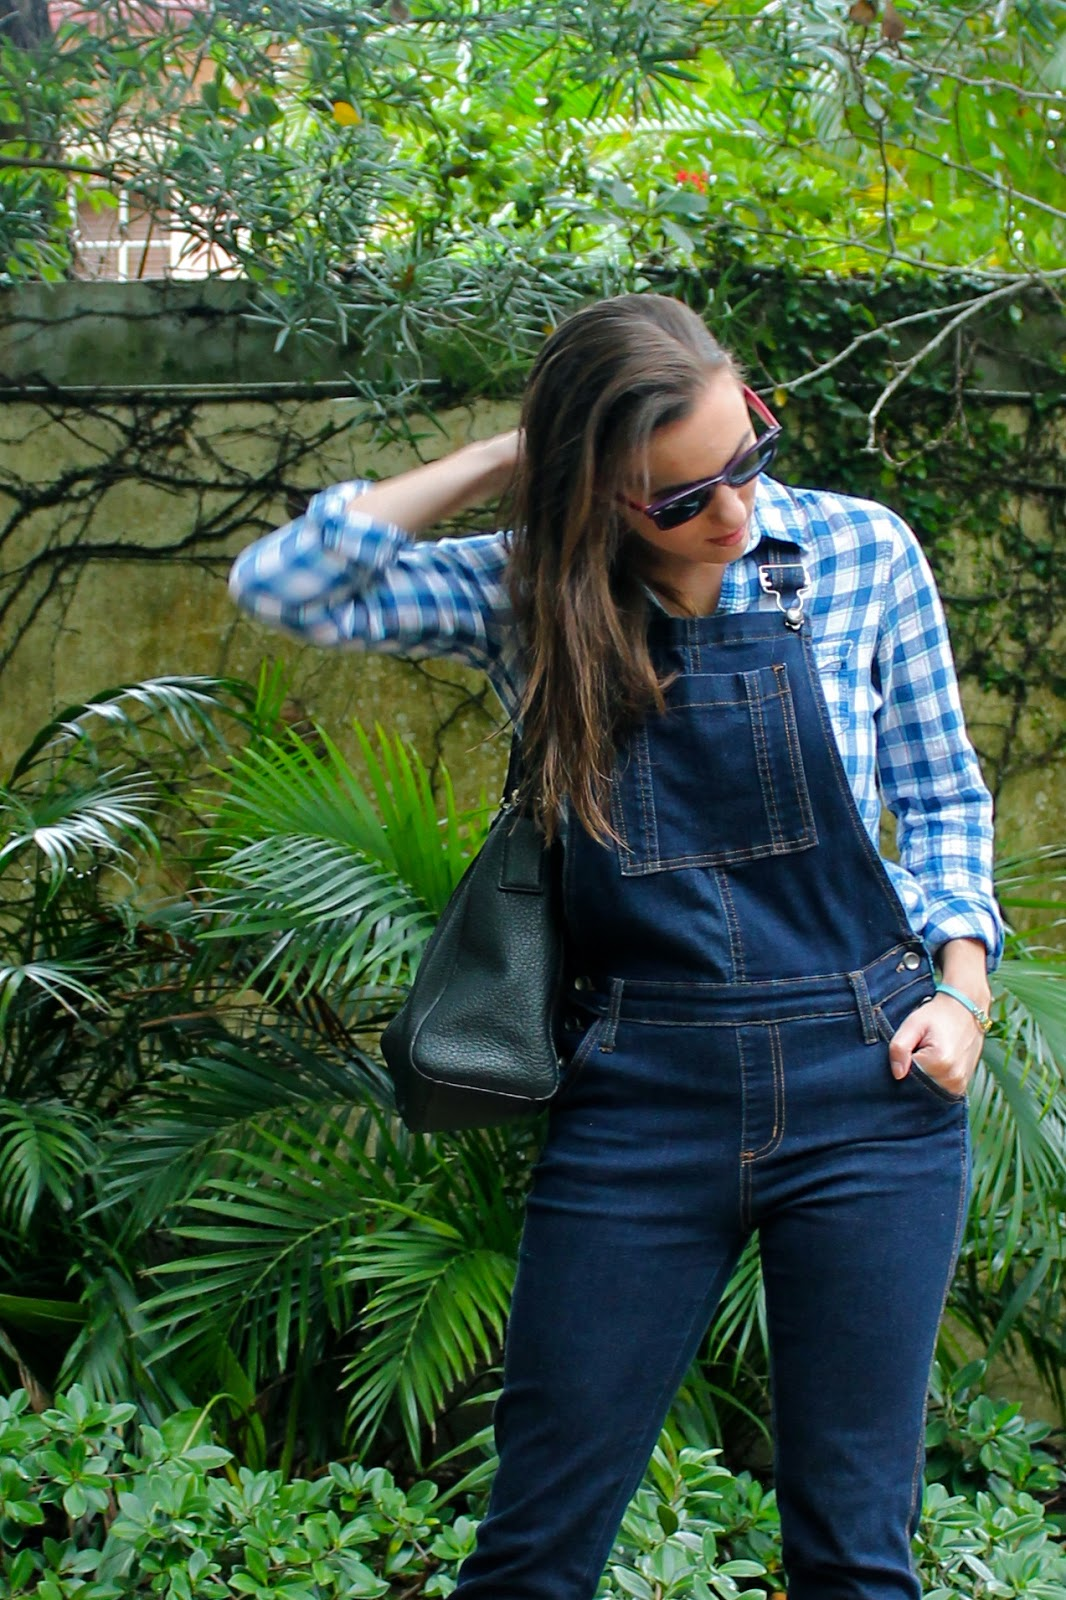 AGAPE Boutique, Abercrombie & Fitch, Kate Spade, Ray-Ban, overalls, fall fashion, winter fashion, outfit idea, Nine West, Miami fashion blogger, Miami fashion, fashion blogger, style blog